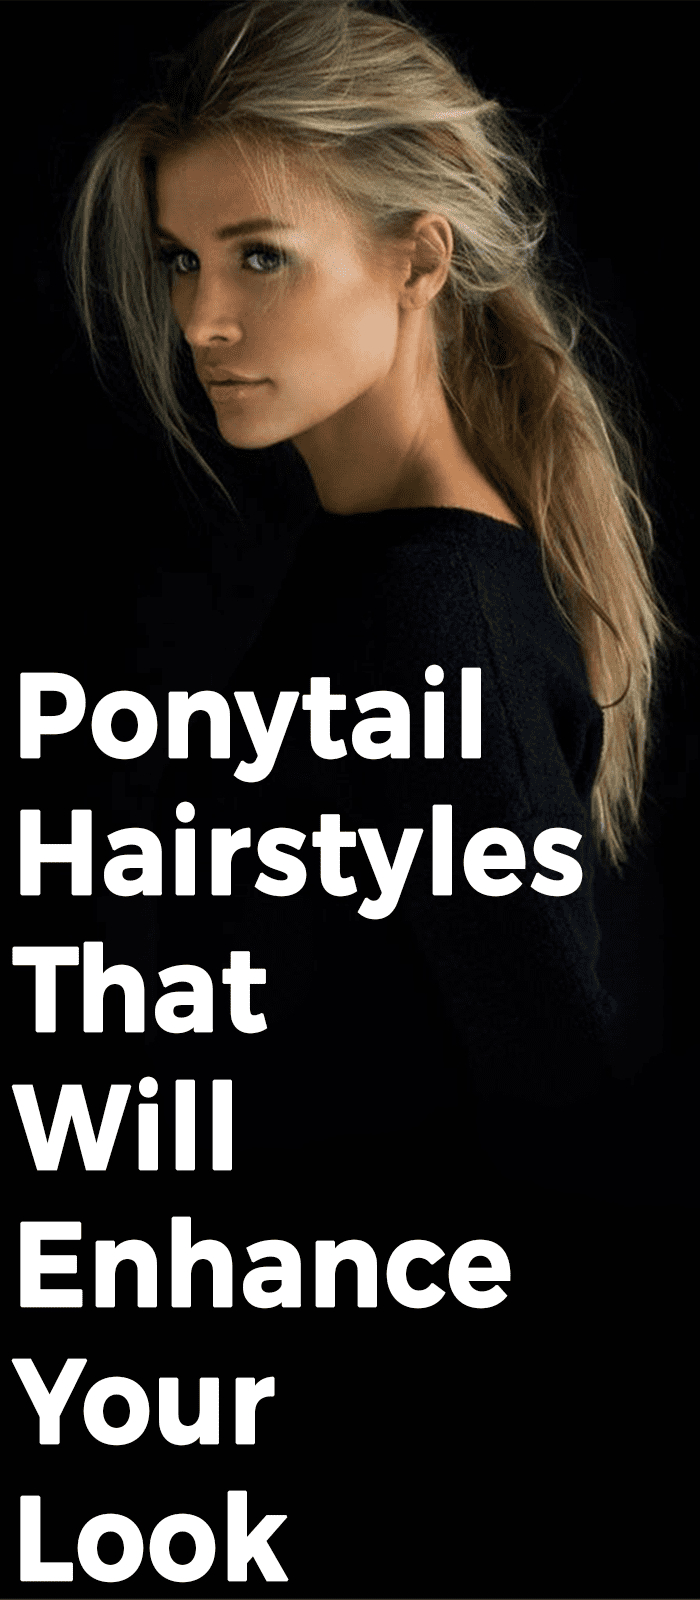 Ponytail Hairstyles That Will Enhance Your Look